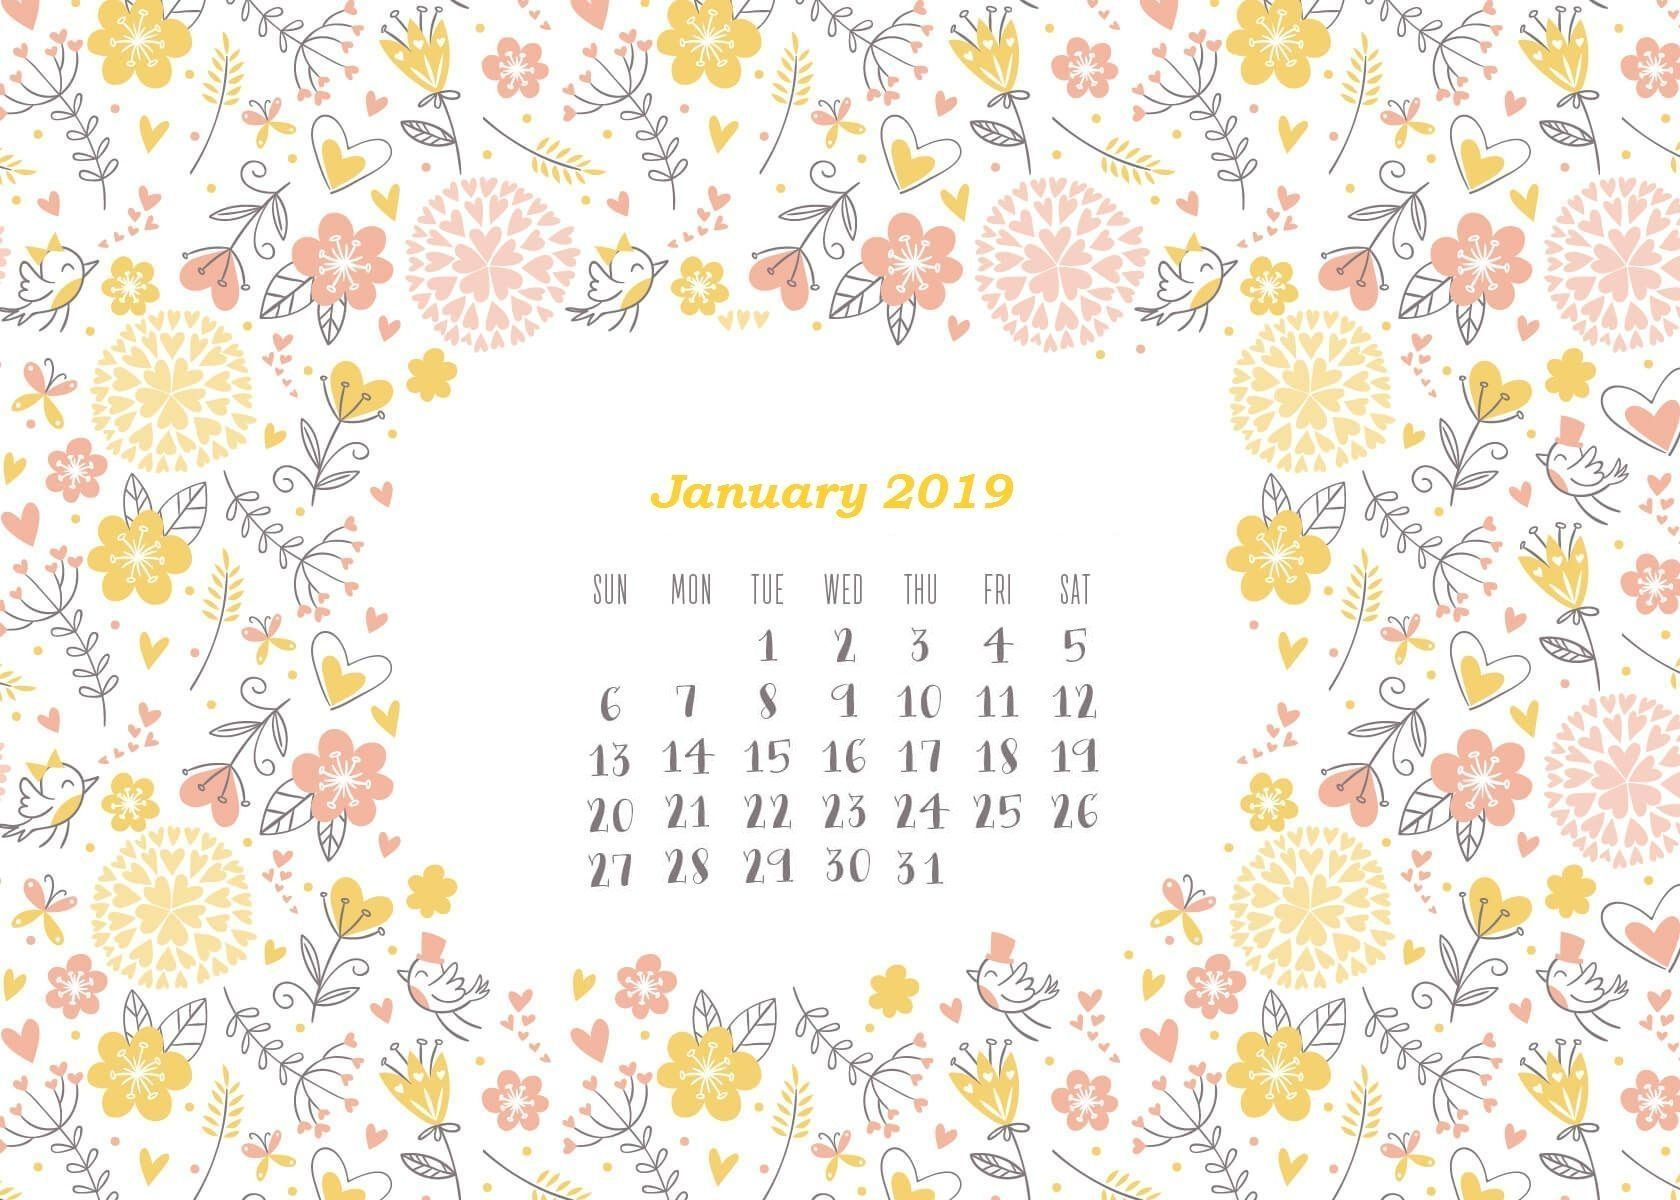 January 2019 Hd Calendar Wallpaper 1 680 1 200 Pixels Intended For Free January 2019 Calendar W Desktop Wallpaper Calendar Calendar Wallpaper Creative Calendar